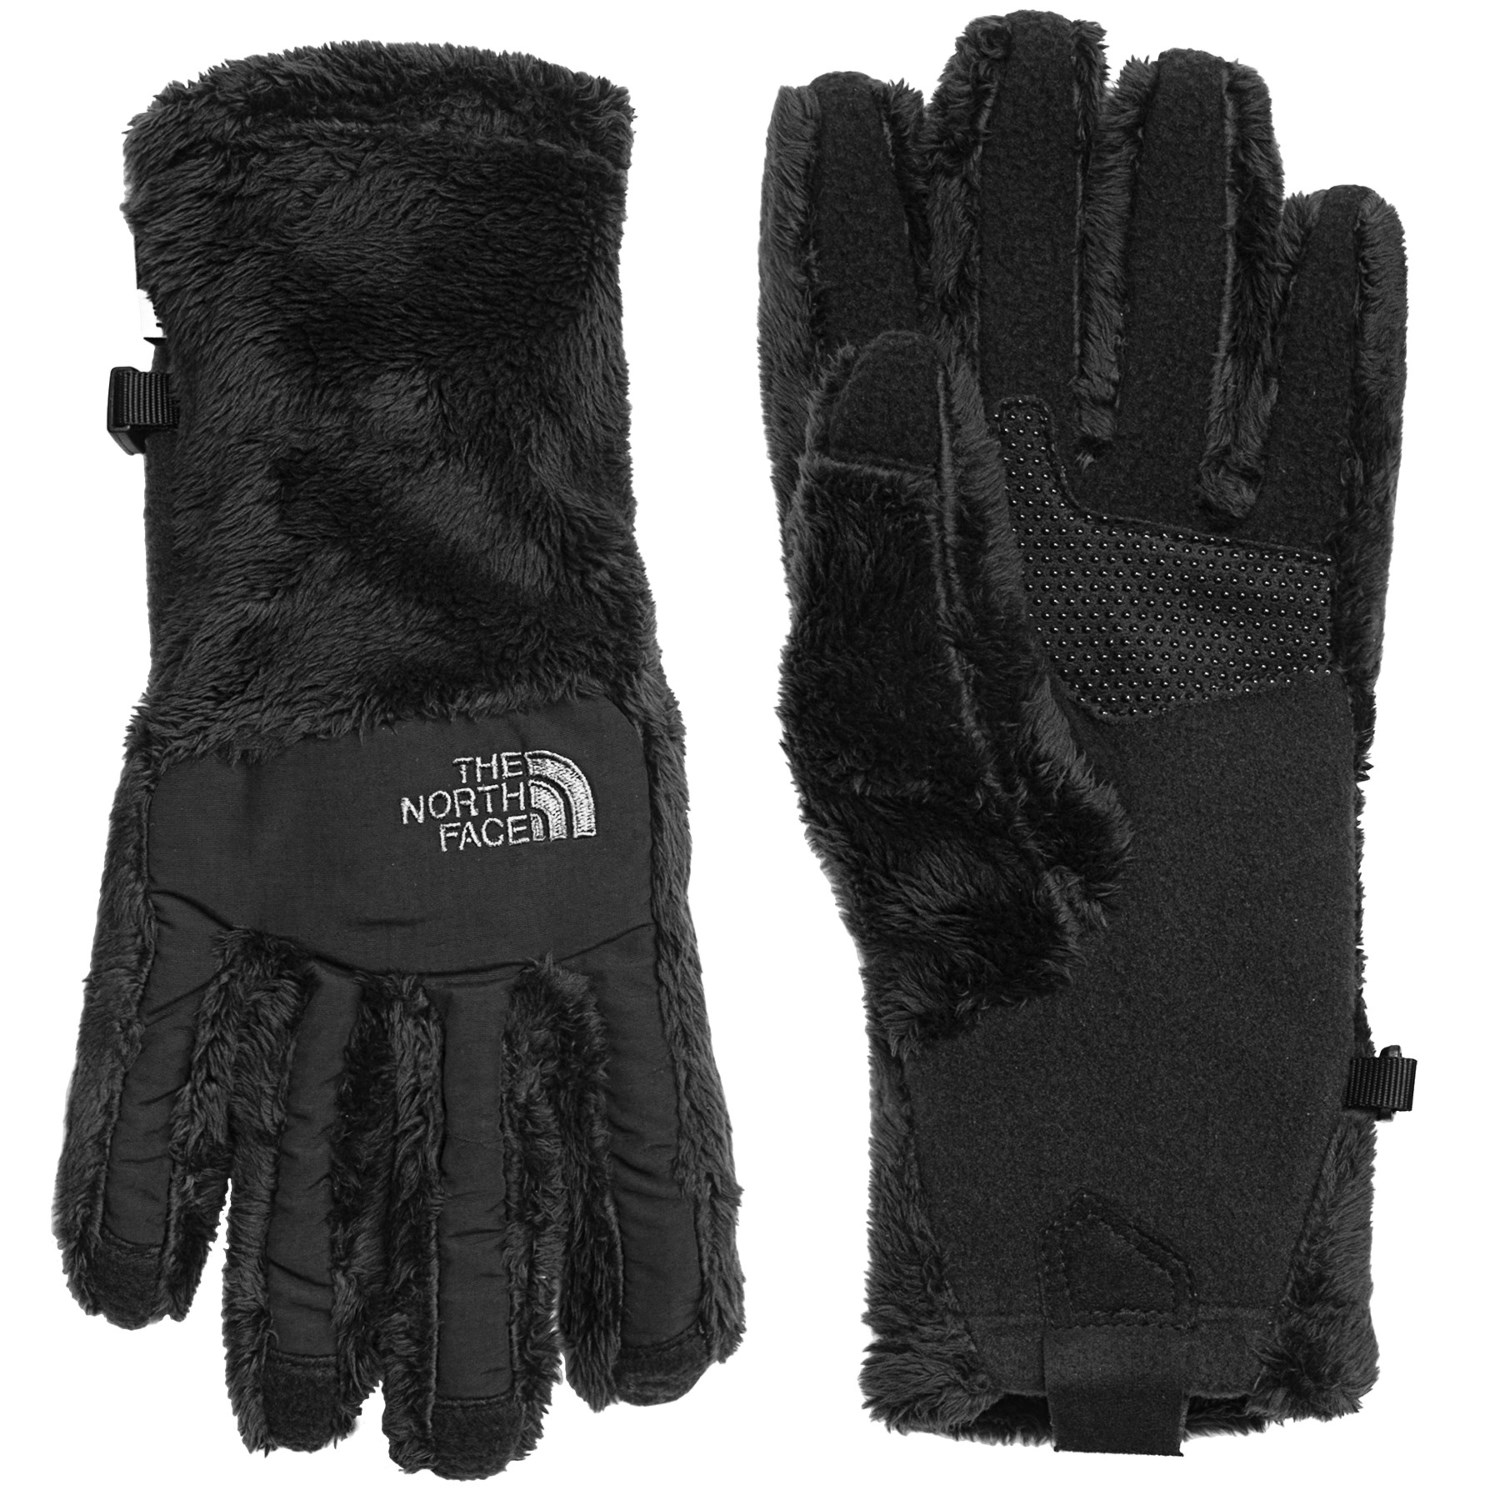 The North Face Women's Denali Thermal Etip Gloves